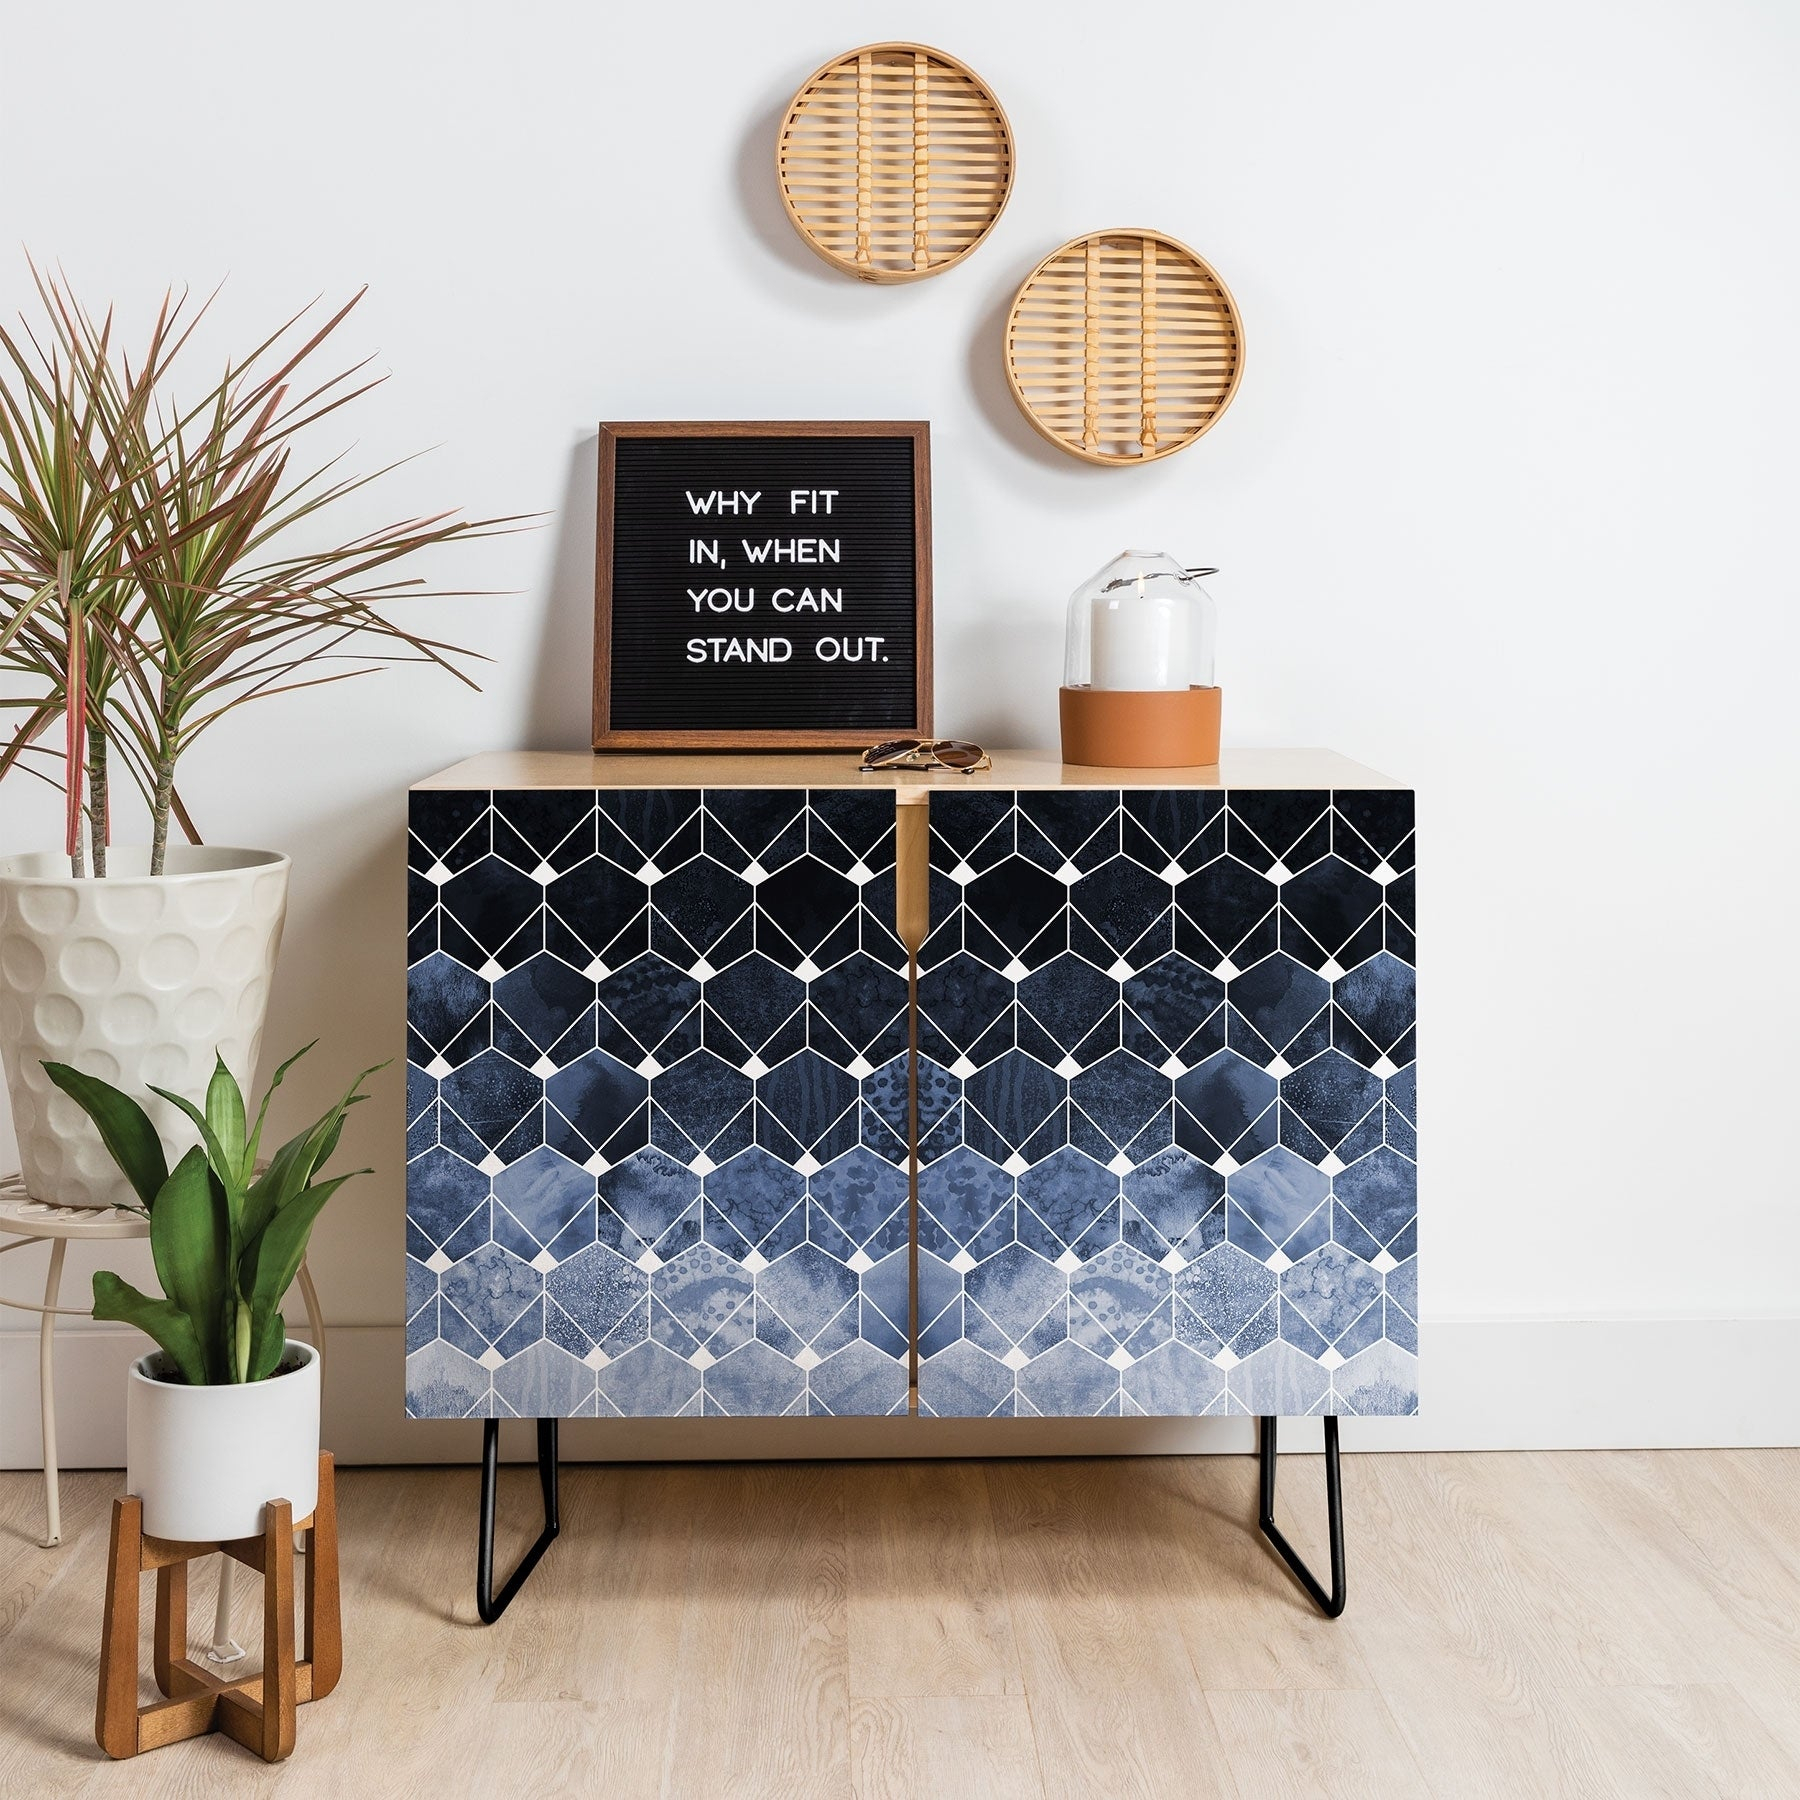 Deny Designs Blue Hexagons And Diamonds Credenza (Birch Or Walnut, 2 Leg  Options) within Line Geo Credenzas (Image 7 of 30)